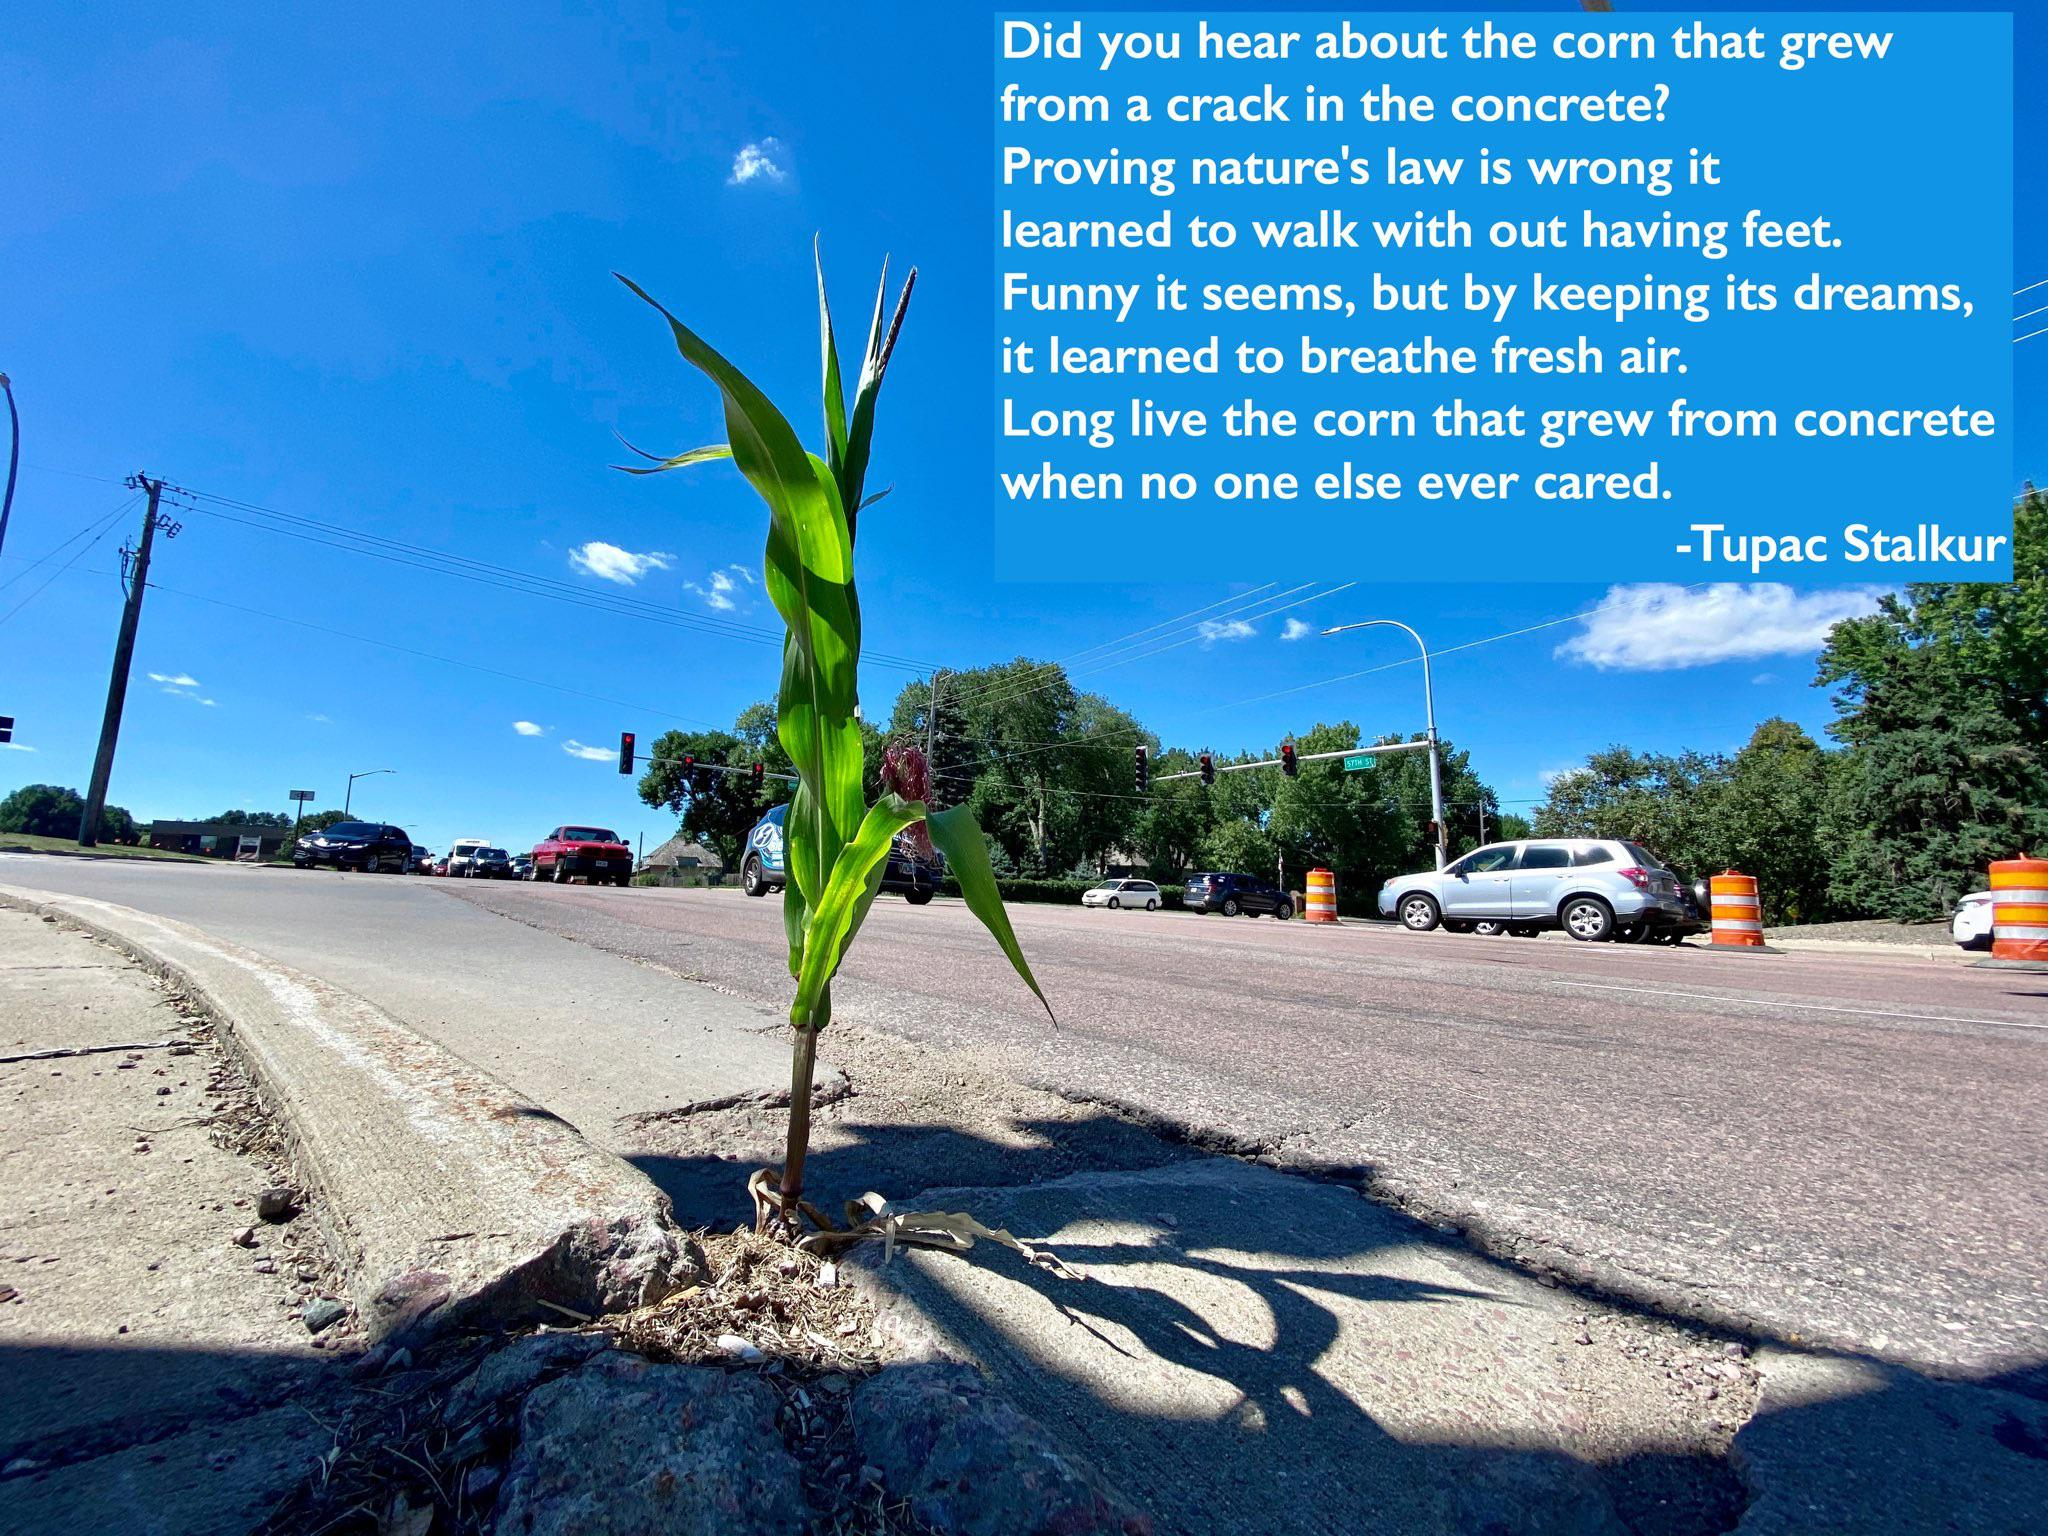 [image] This urban corn is all the motivation I need in 2020.